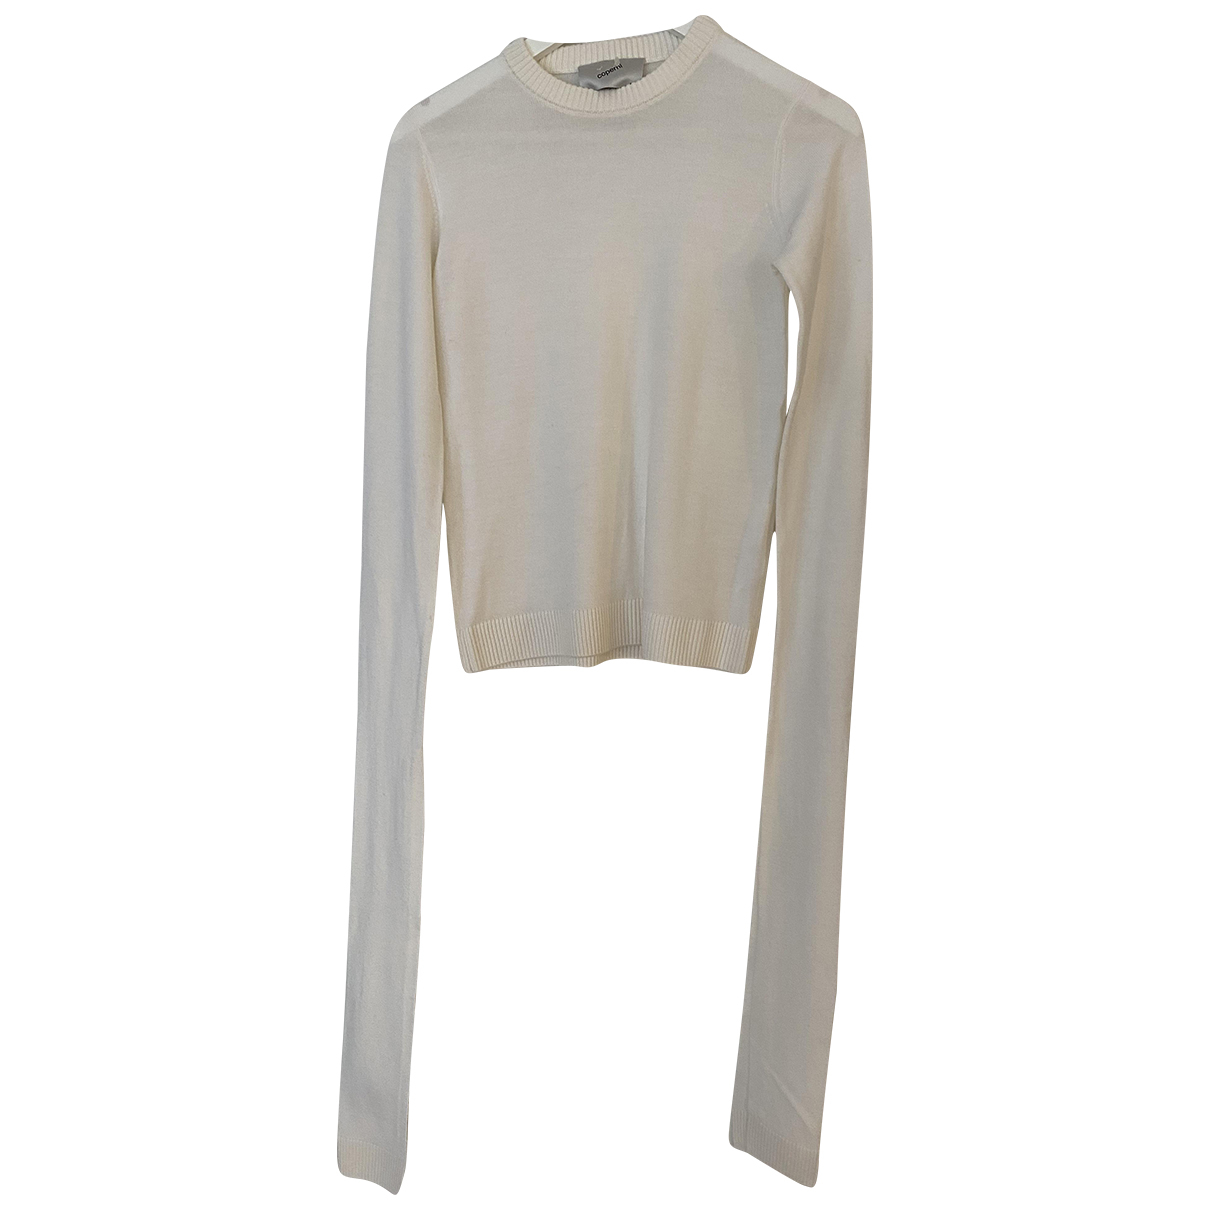 Coperni N White Wool Knitwear for Women 8 UK